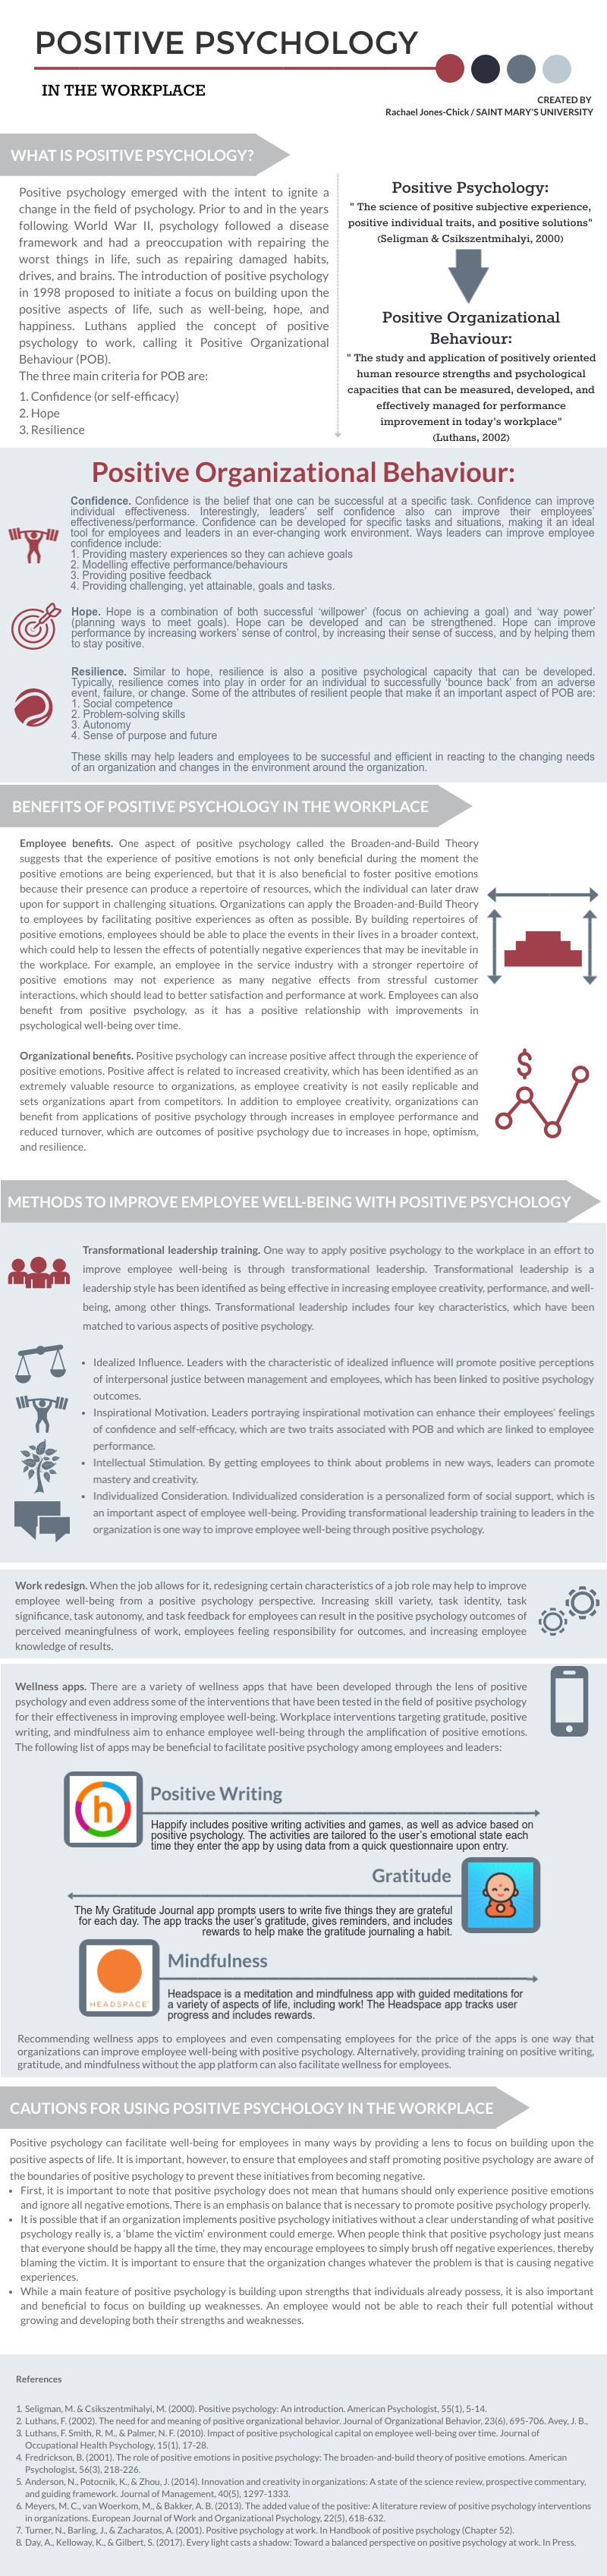 Positive-Psychology-in-the-Workplace-2-.